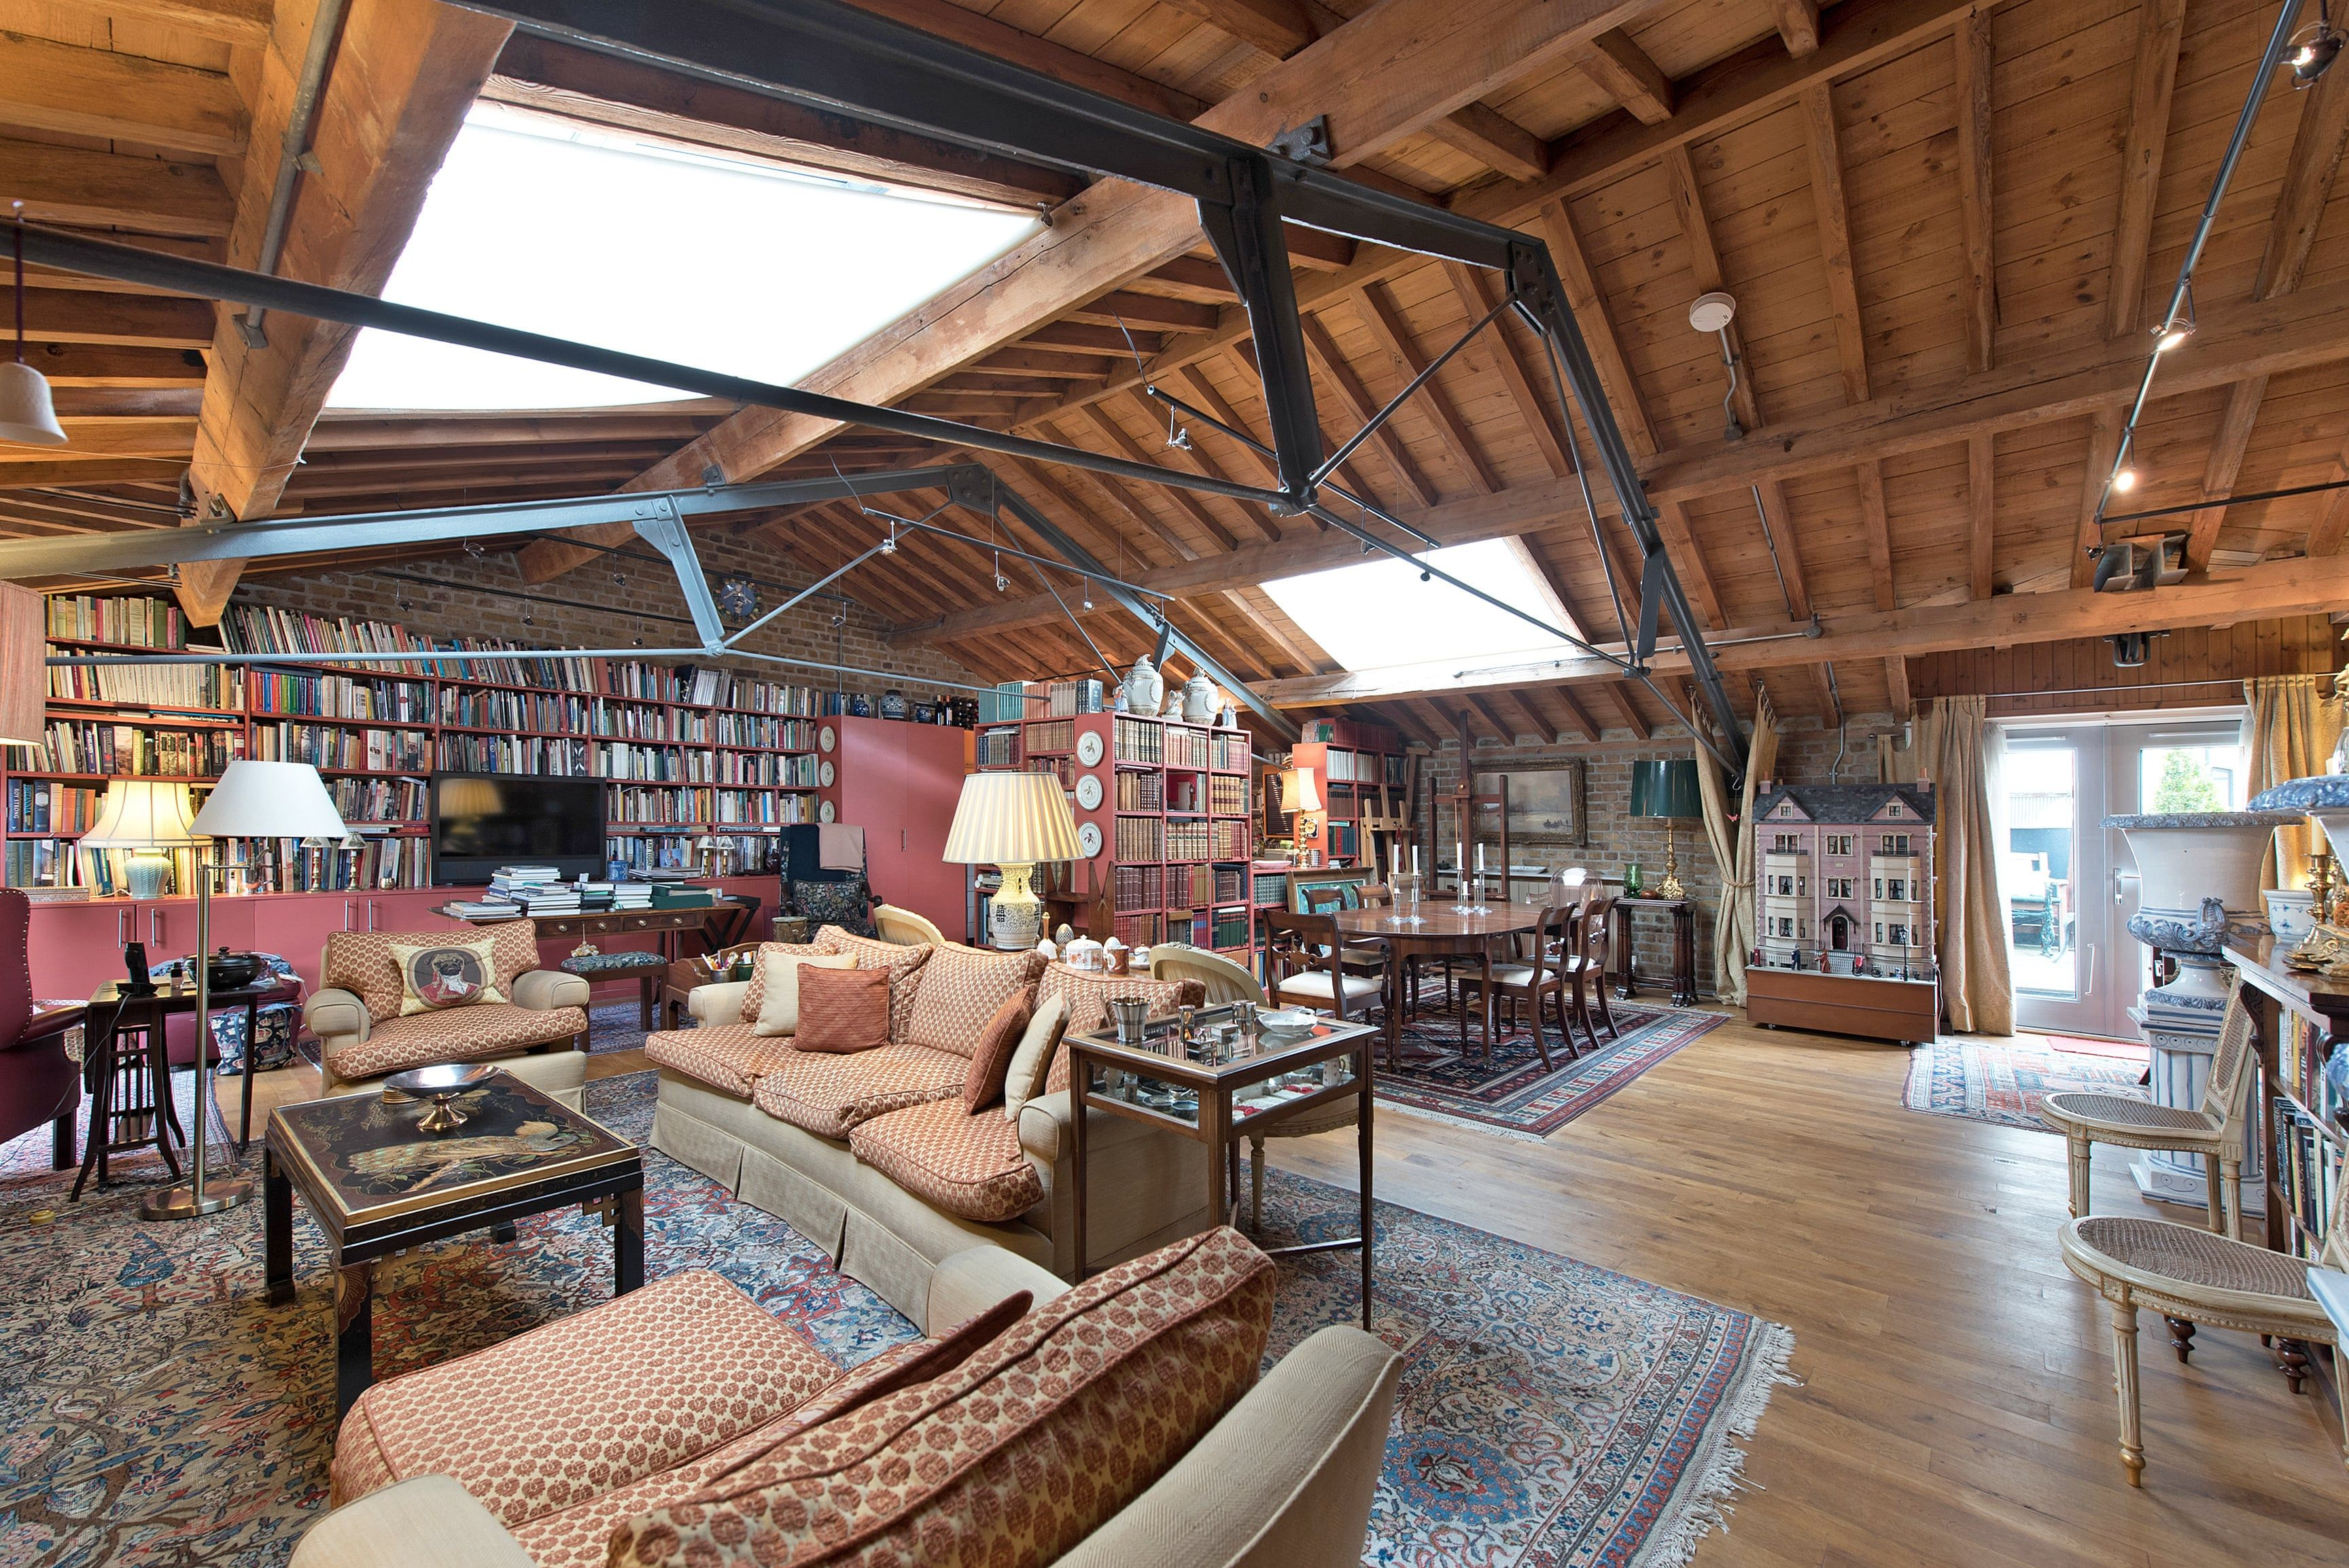 Homes for sale in warehouse conversions in pictures